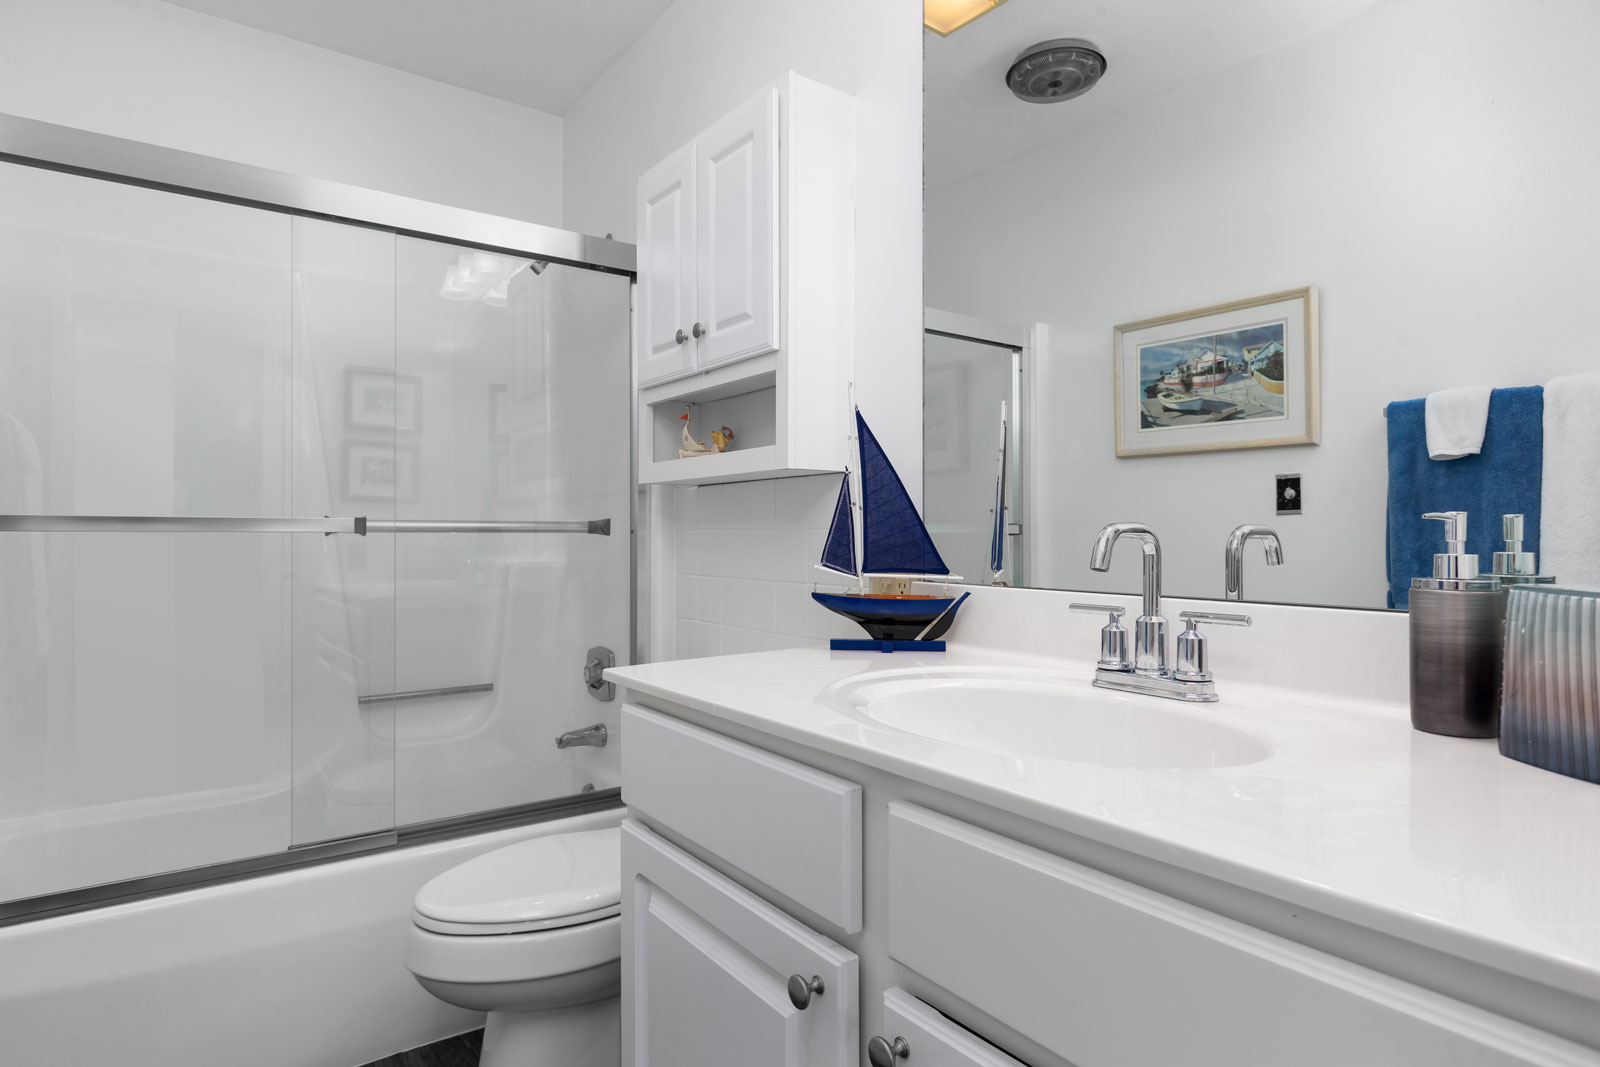 A bathroom with shower in background at Chesterfield Village Apartments